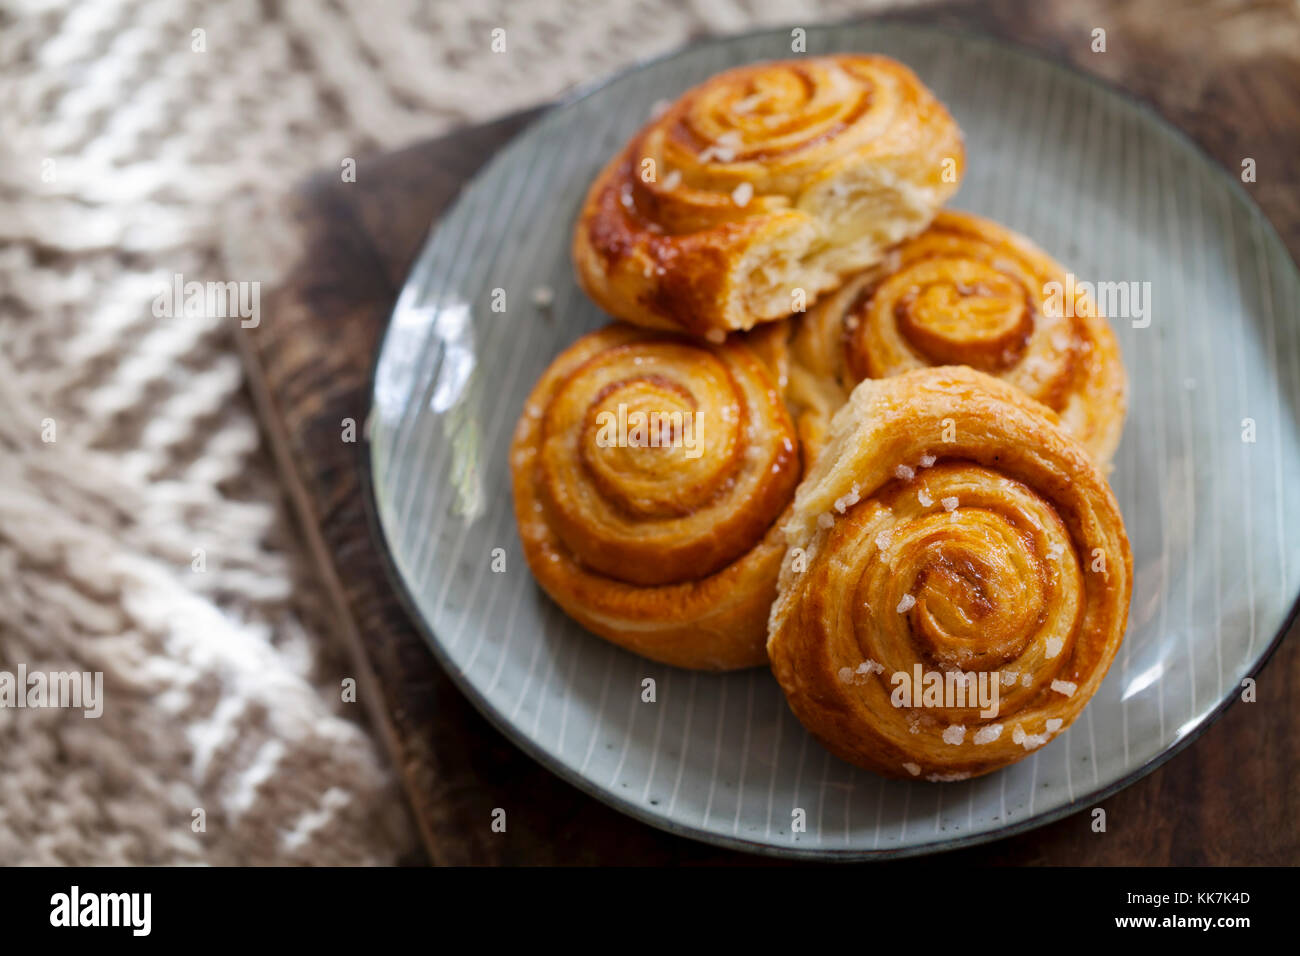 Danish pastries - Stock Image